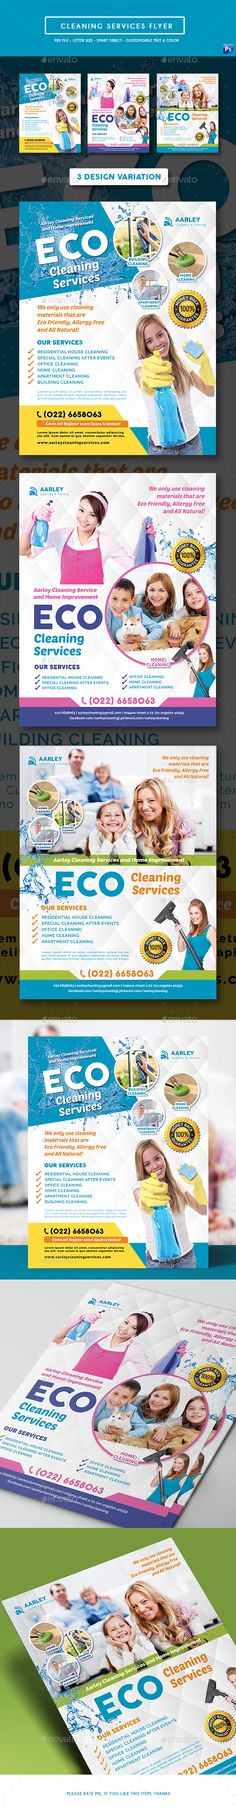 Cleaning Services #Flyer - Corporate Flyers Download here: https://graphicriver.net/item/cleaning-services-flyer/19585464?ref=alena994